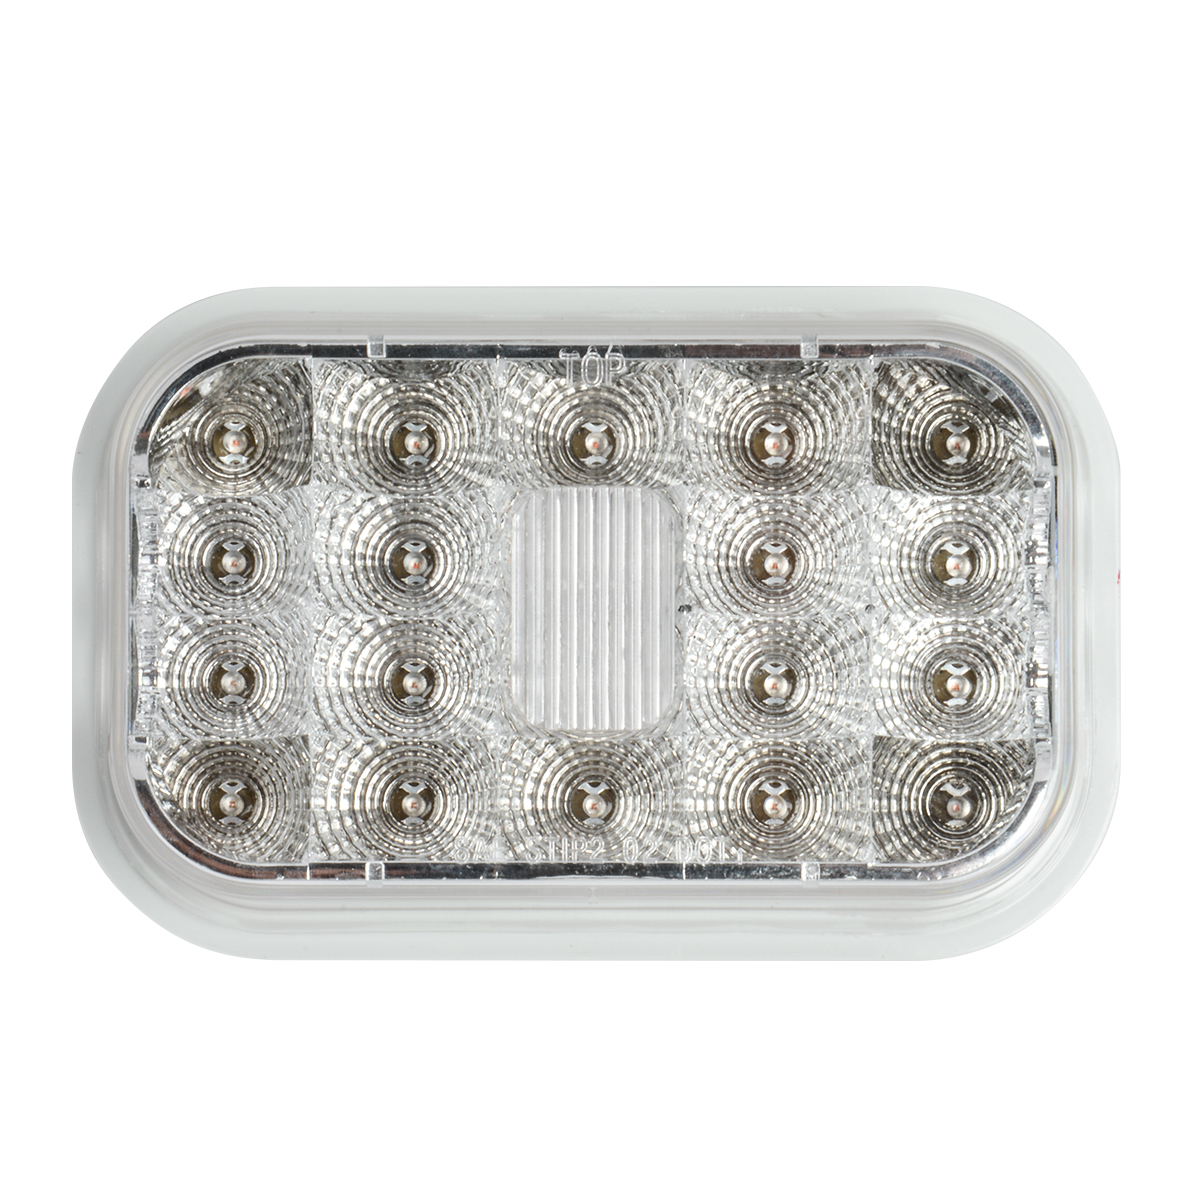 High Profile Rectangular Spyder LED Light in Clear Lens